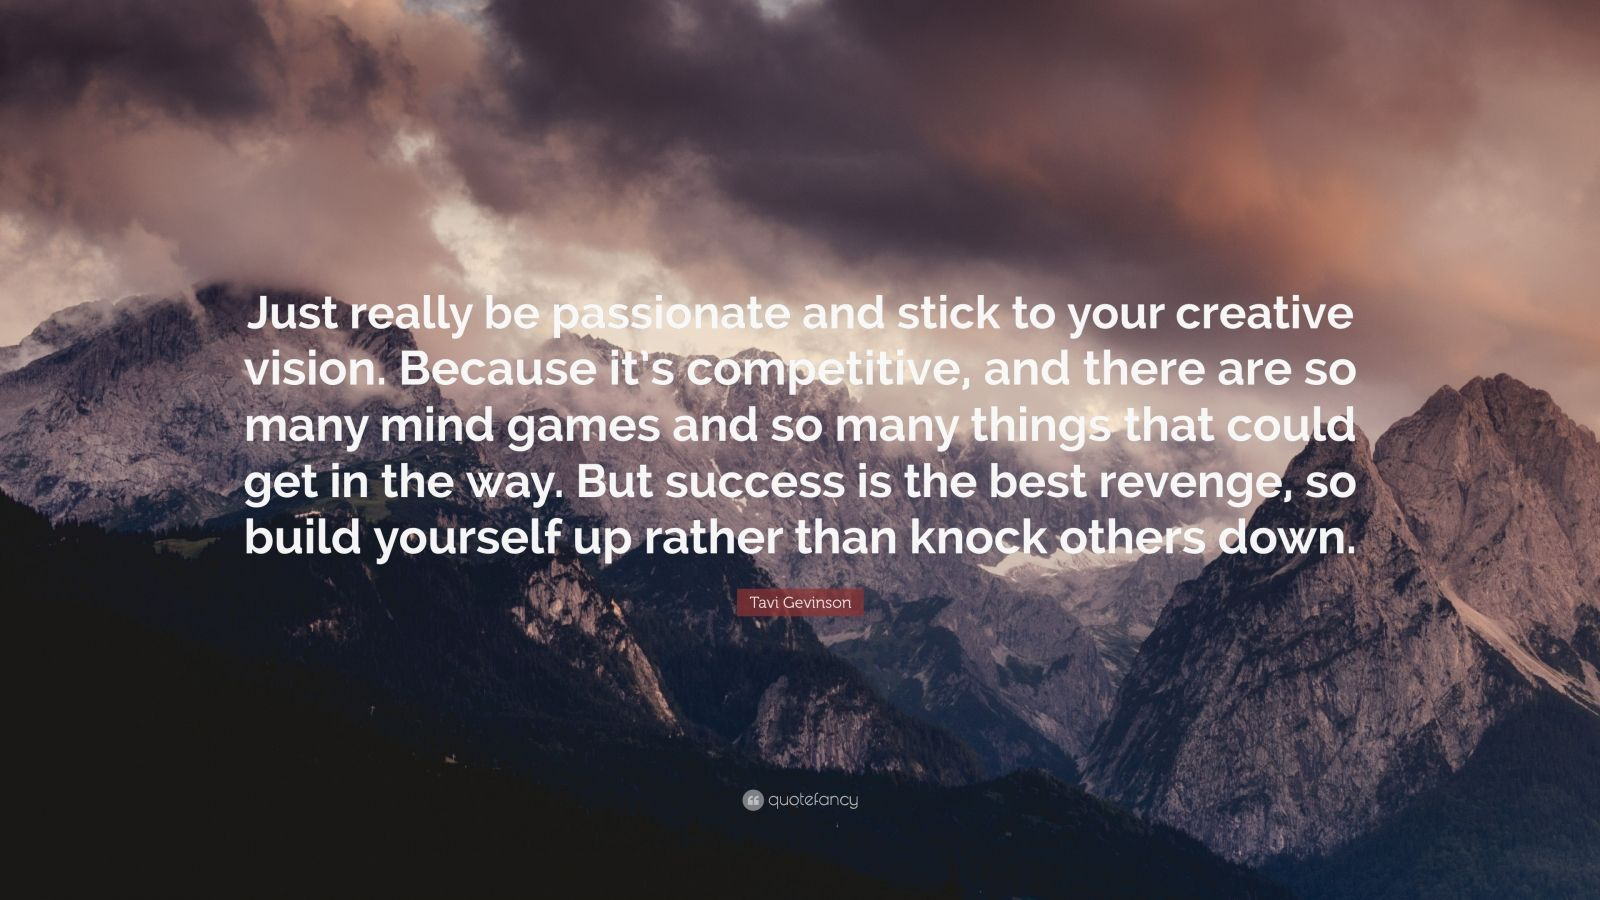 """Tavi Gevinson Quote: """"Just really be passionate and stick to your creative vision. Because it's competitive, and there are so many mind games and so many things that could get in the way. But success is the best revenge, so build yourself up rather than knock others down."""""""